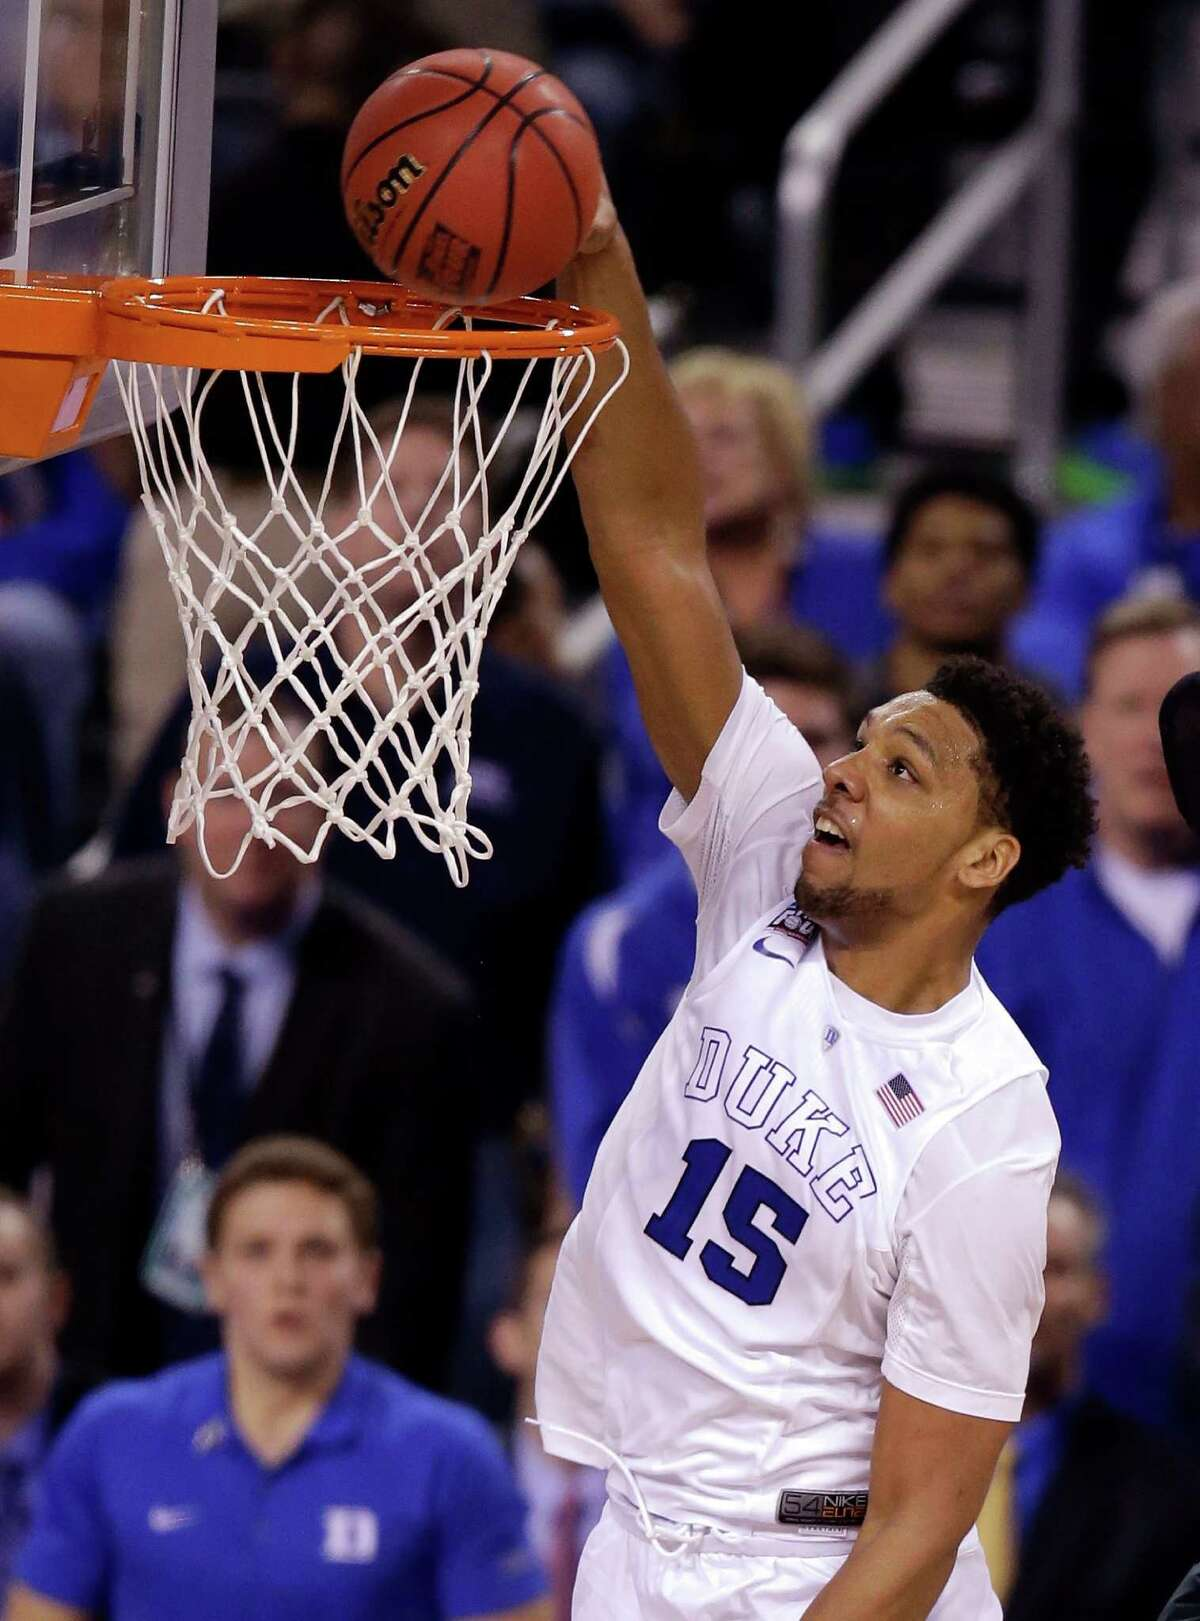 Duke's Jahlil Okafor dunks the ball against Michigan State during the second half of the NCAA Final Four national semifinal game in Indianapolis.